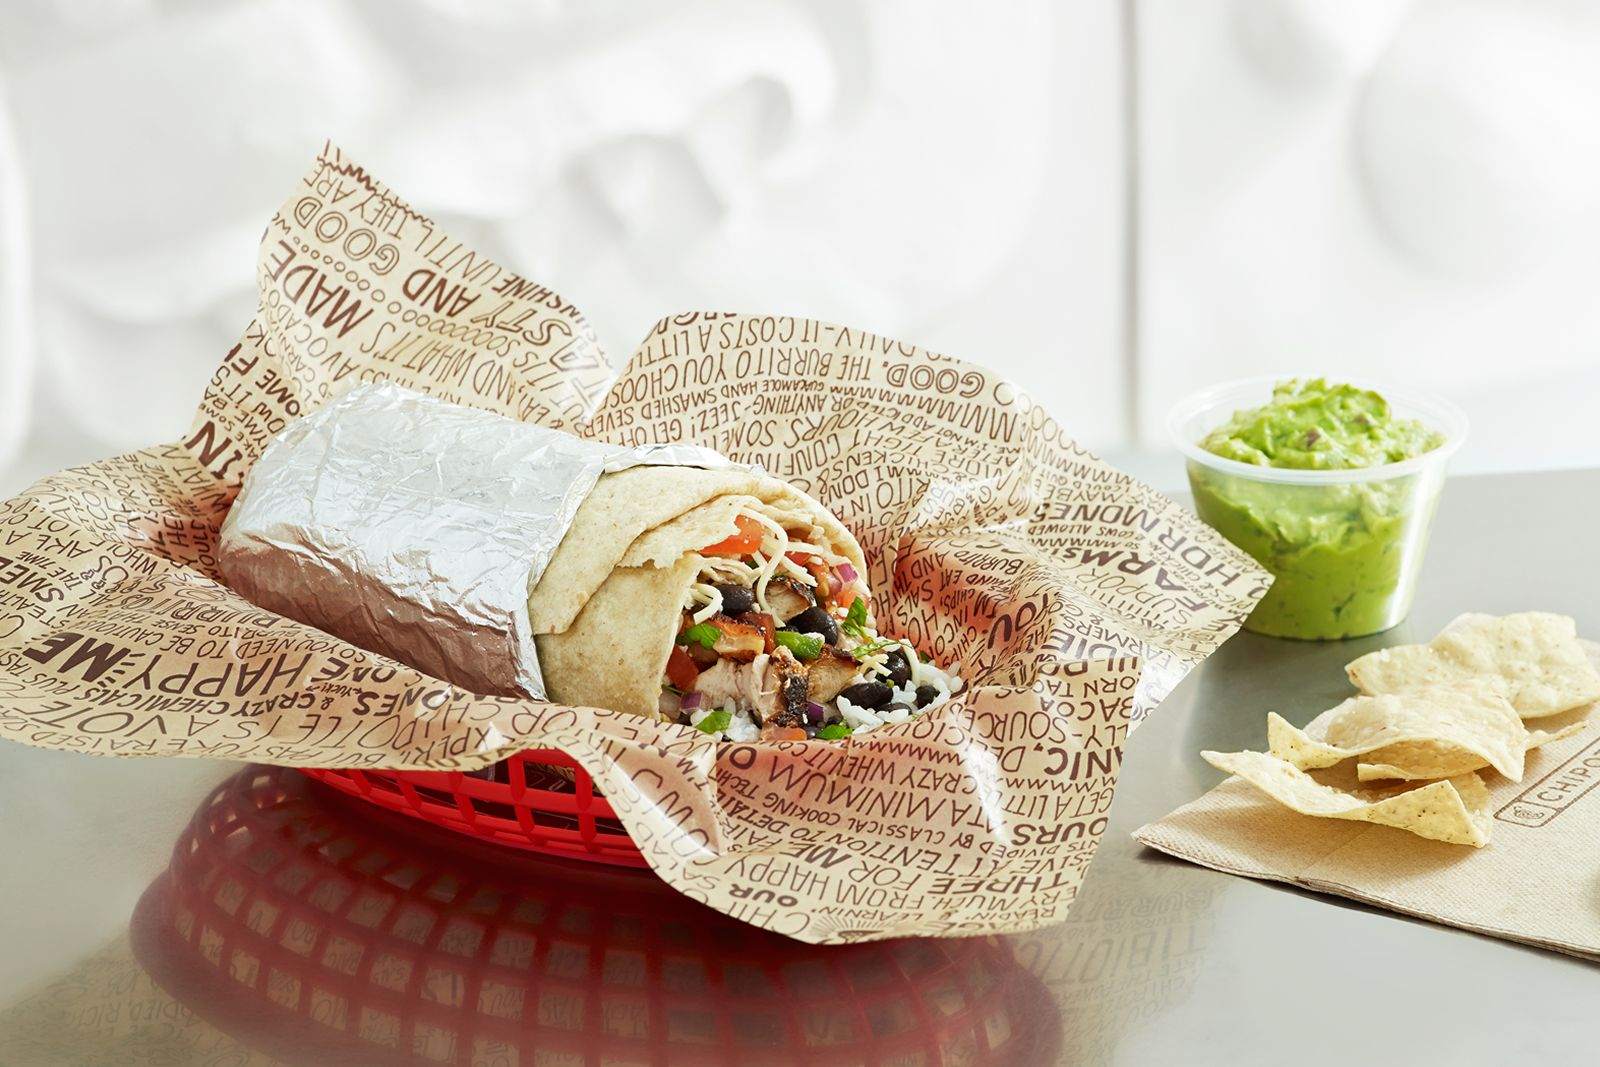 Chipotle Salutes Veterans With Special BOGO Deal On Nov. 11